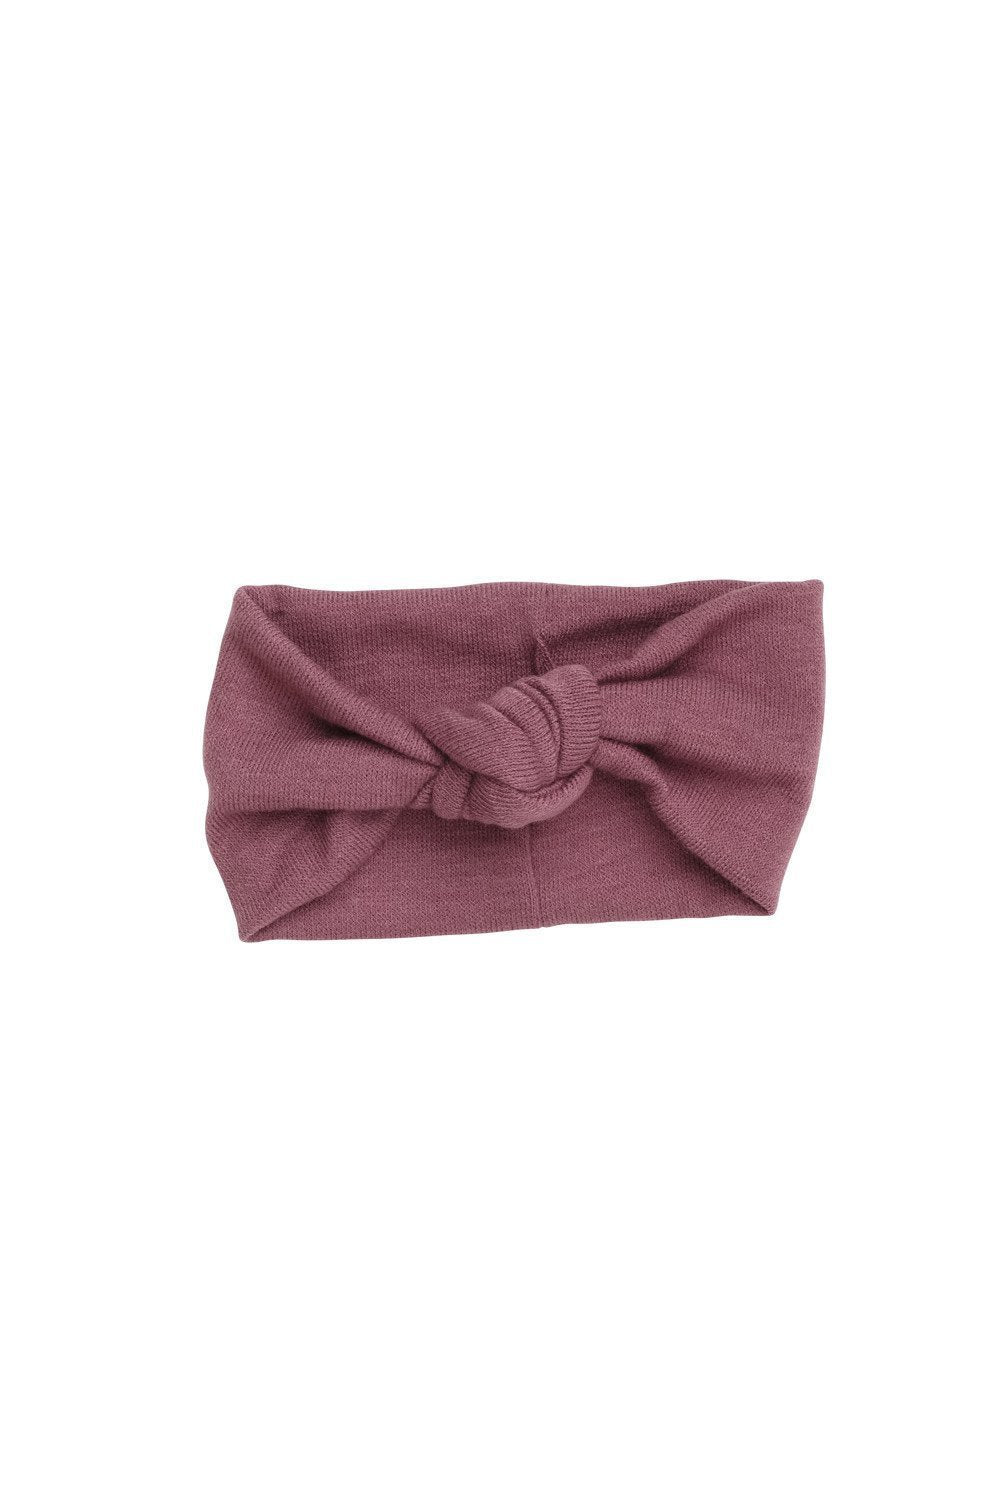 Knot Wrap - Light Mauve Wool - PROJECT 6, modest fashion